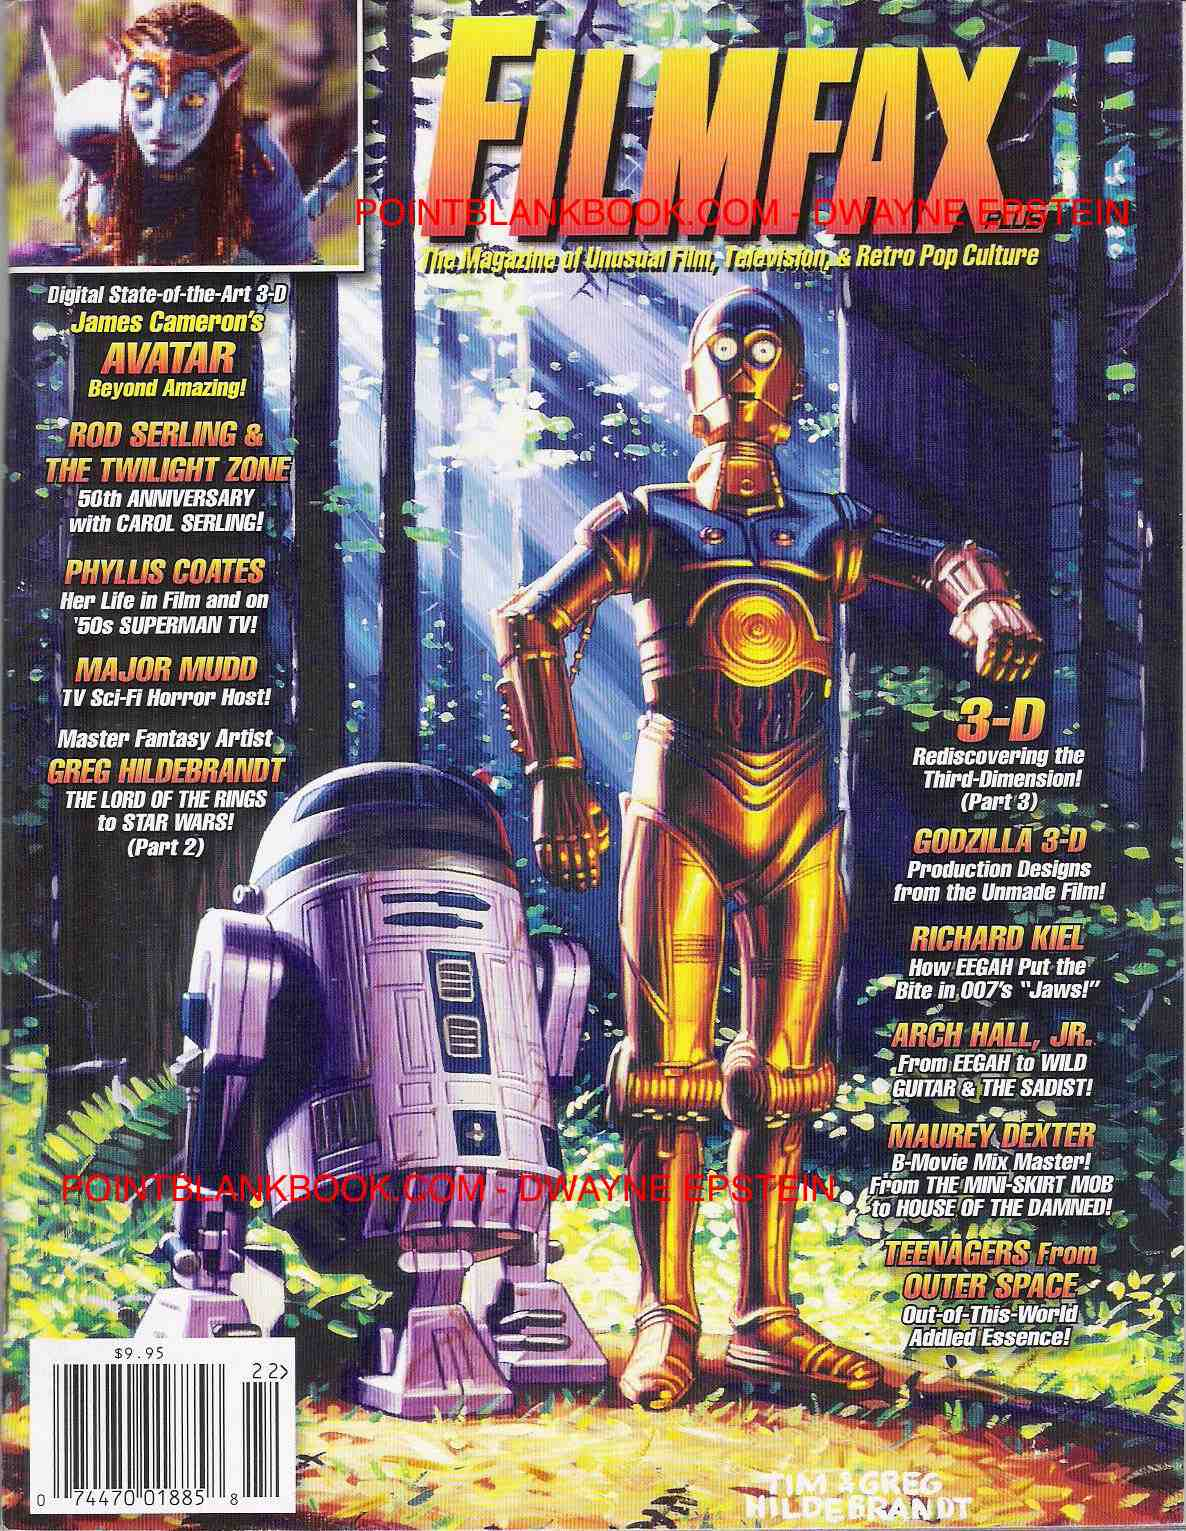 Cover of Filmfax Greg Hildebrandt interview, Pt. 2.